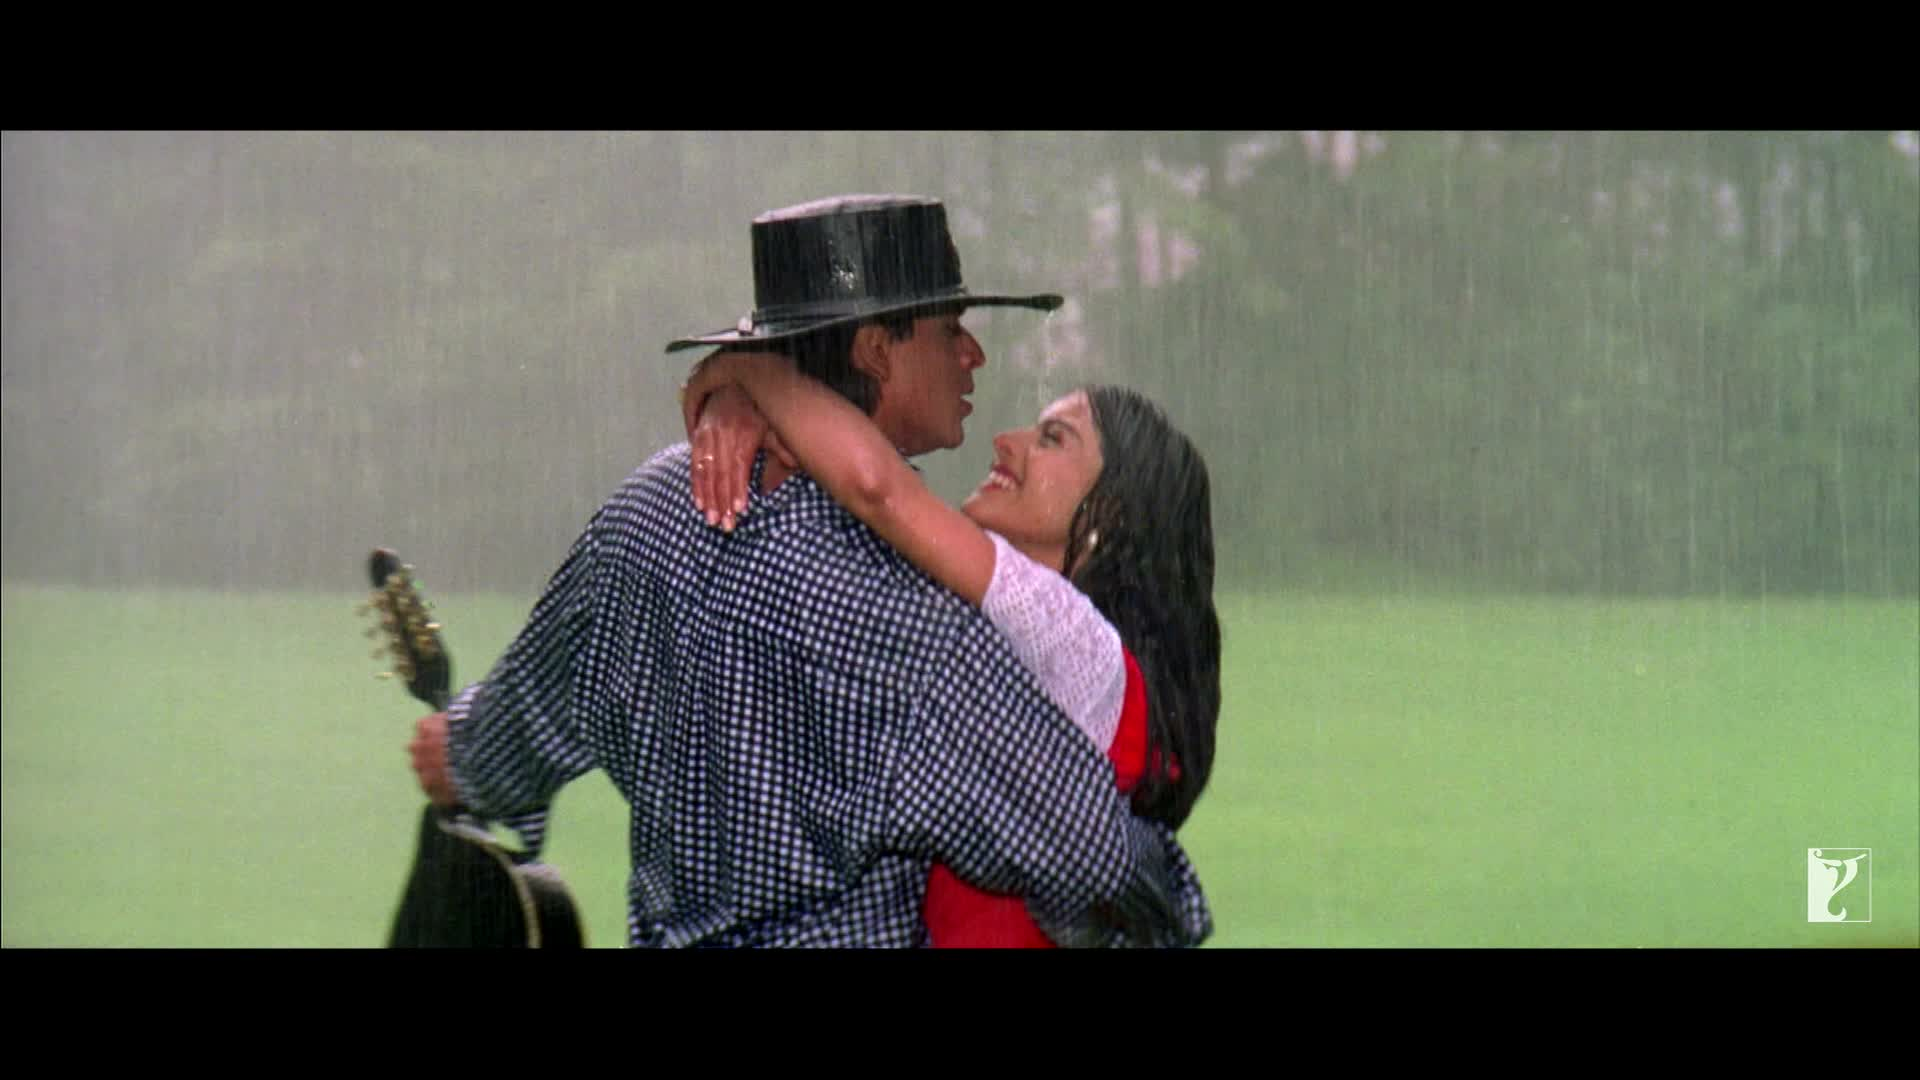 dilwale dulhania le jayenge movie download mp4